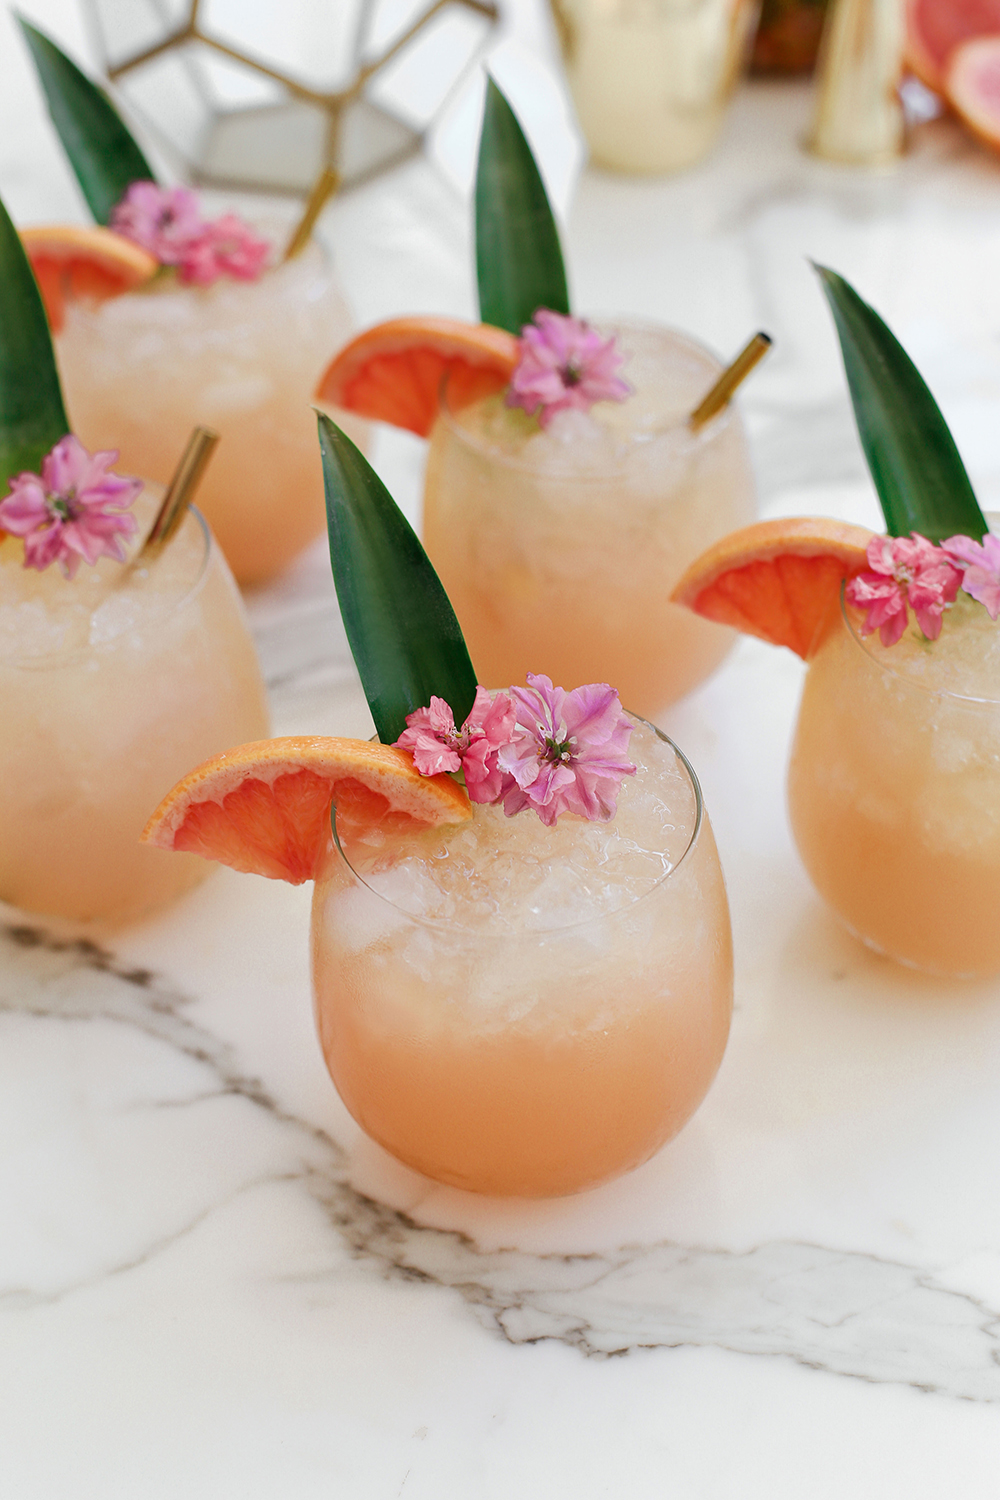 tropical crush cocktail - image 3